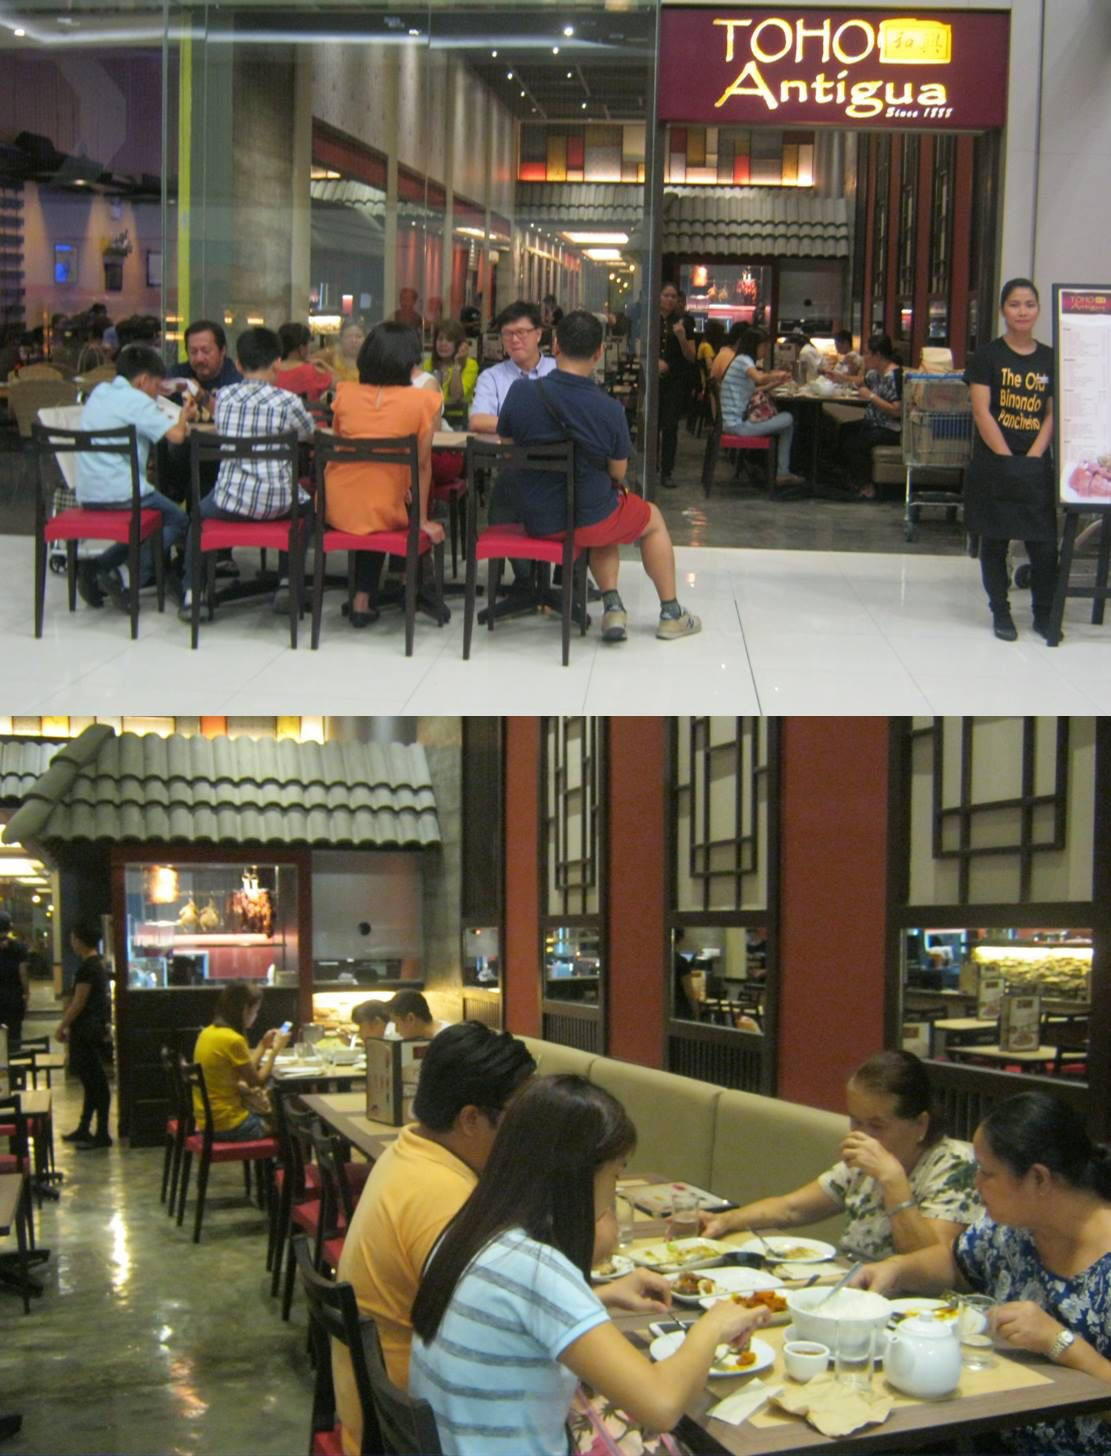 Cuisine Us Toho Antigua Is Now Open At The Foodstreet At Smsouthmall Visit